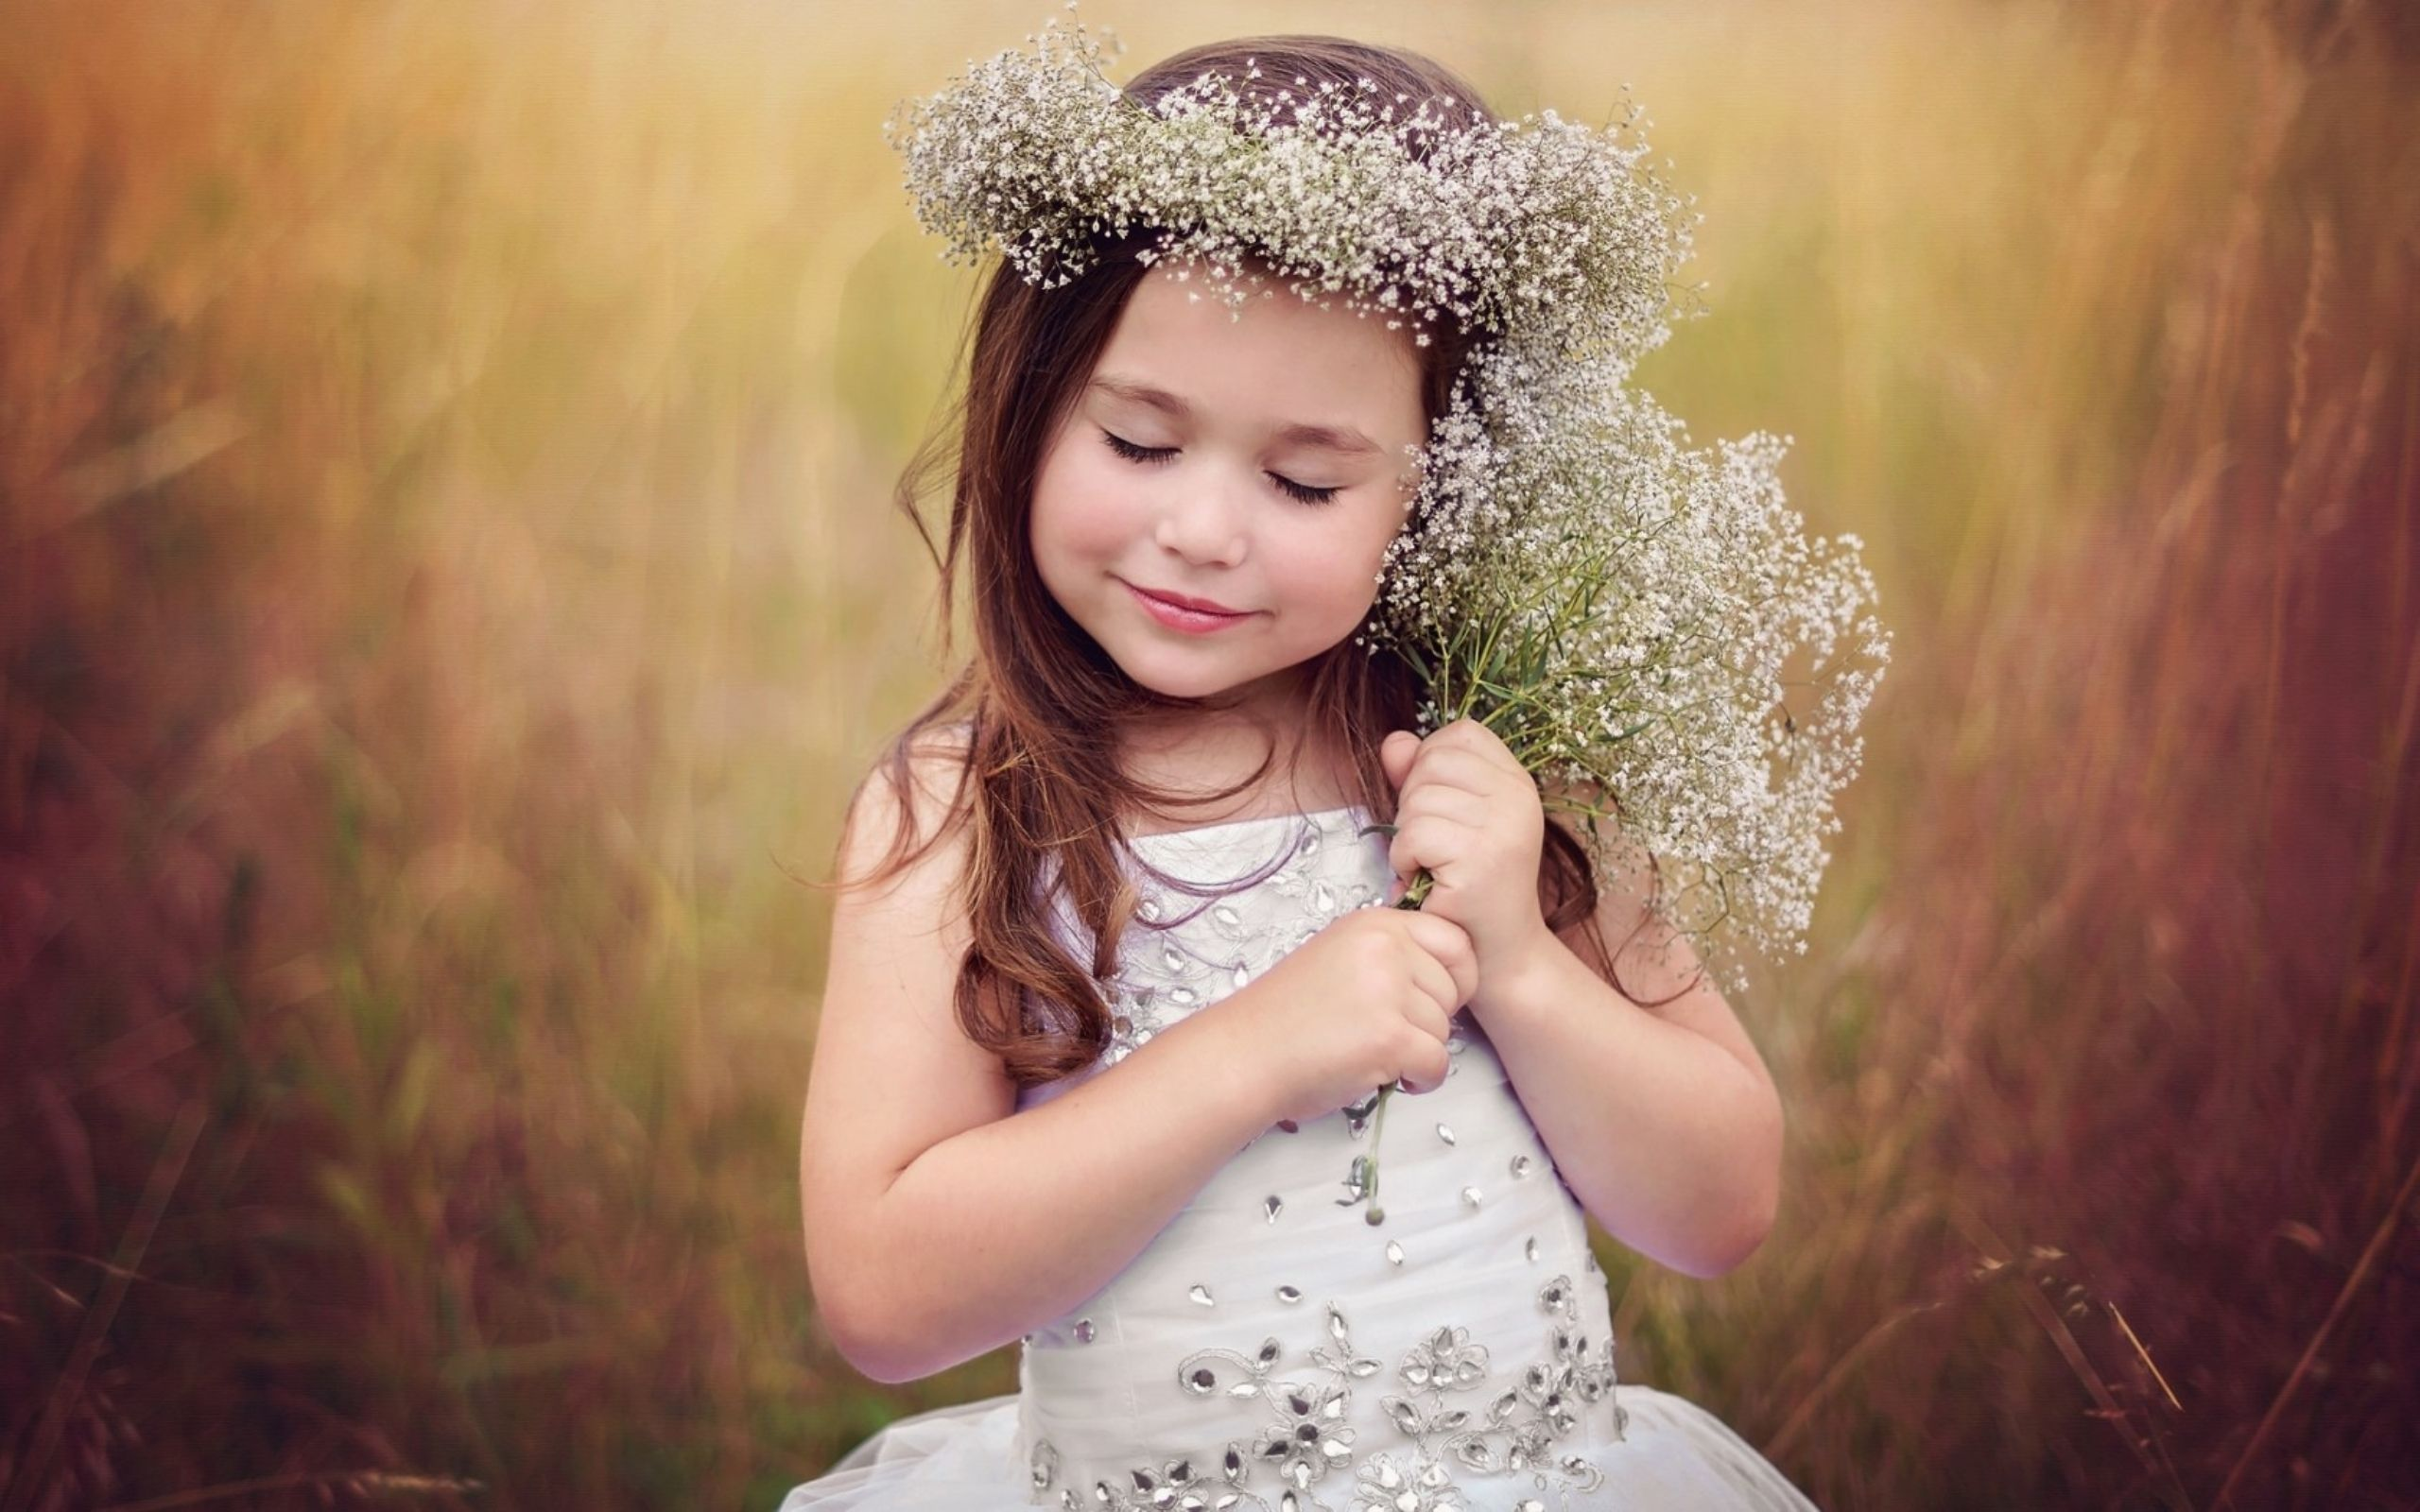 cute little girl | hd wallpapers | morgue #3 | pinterest | hd